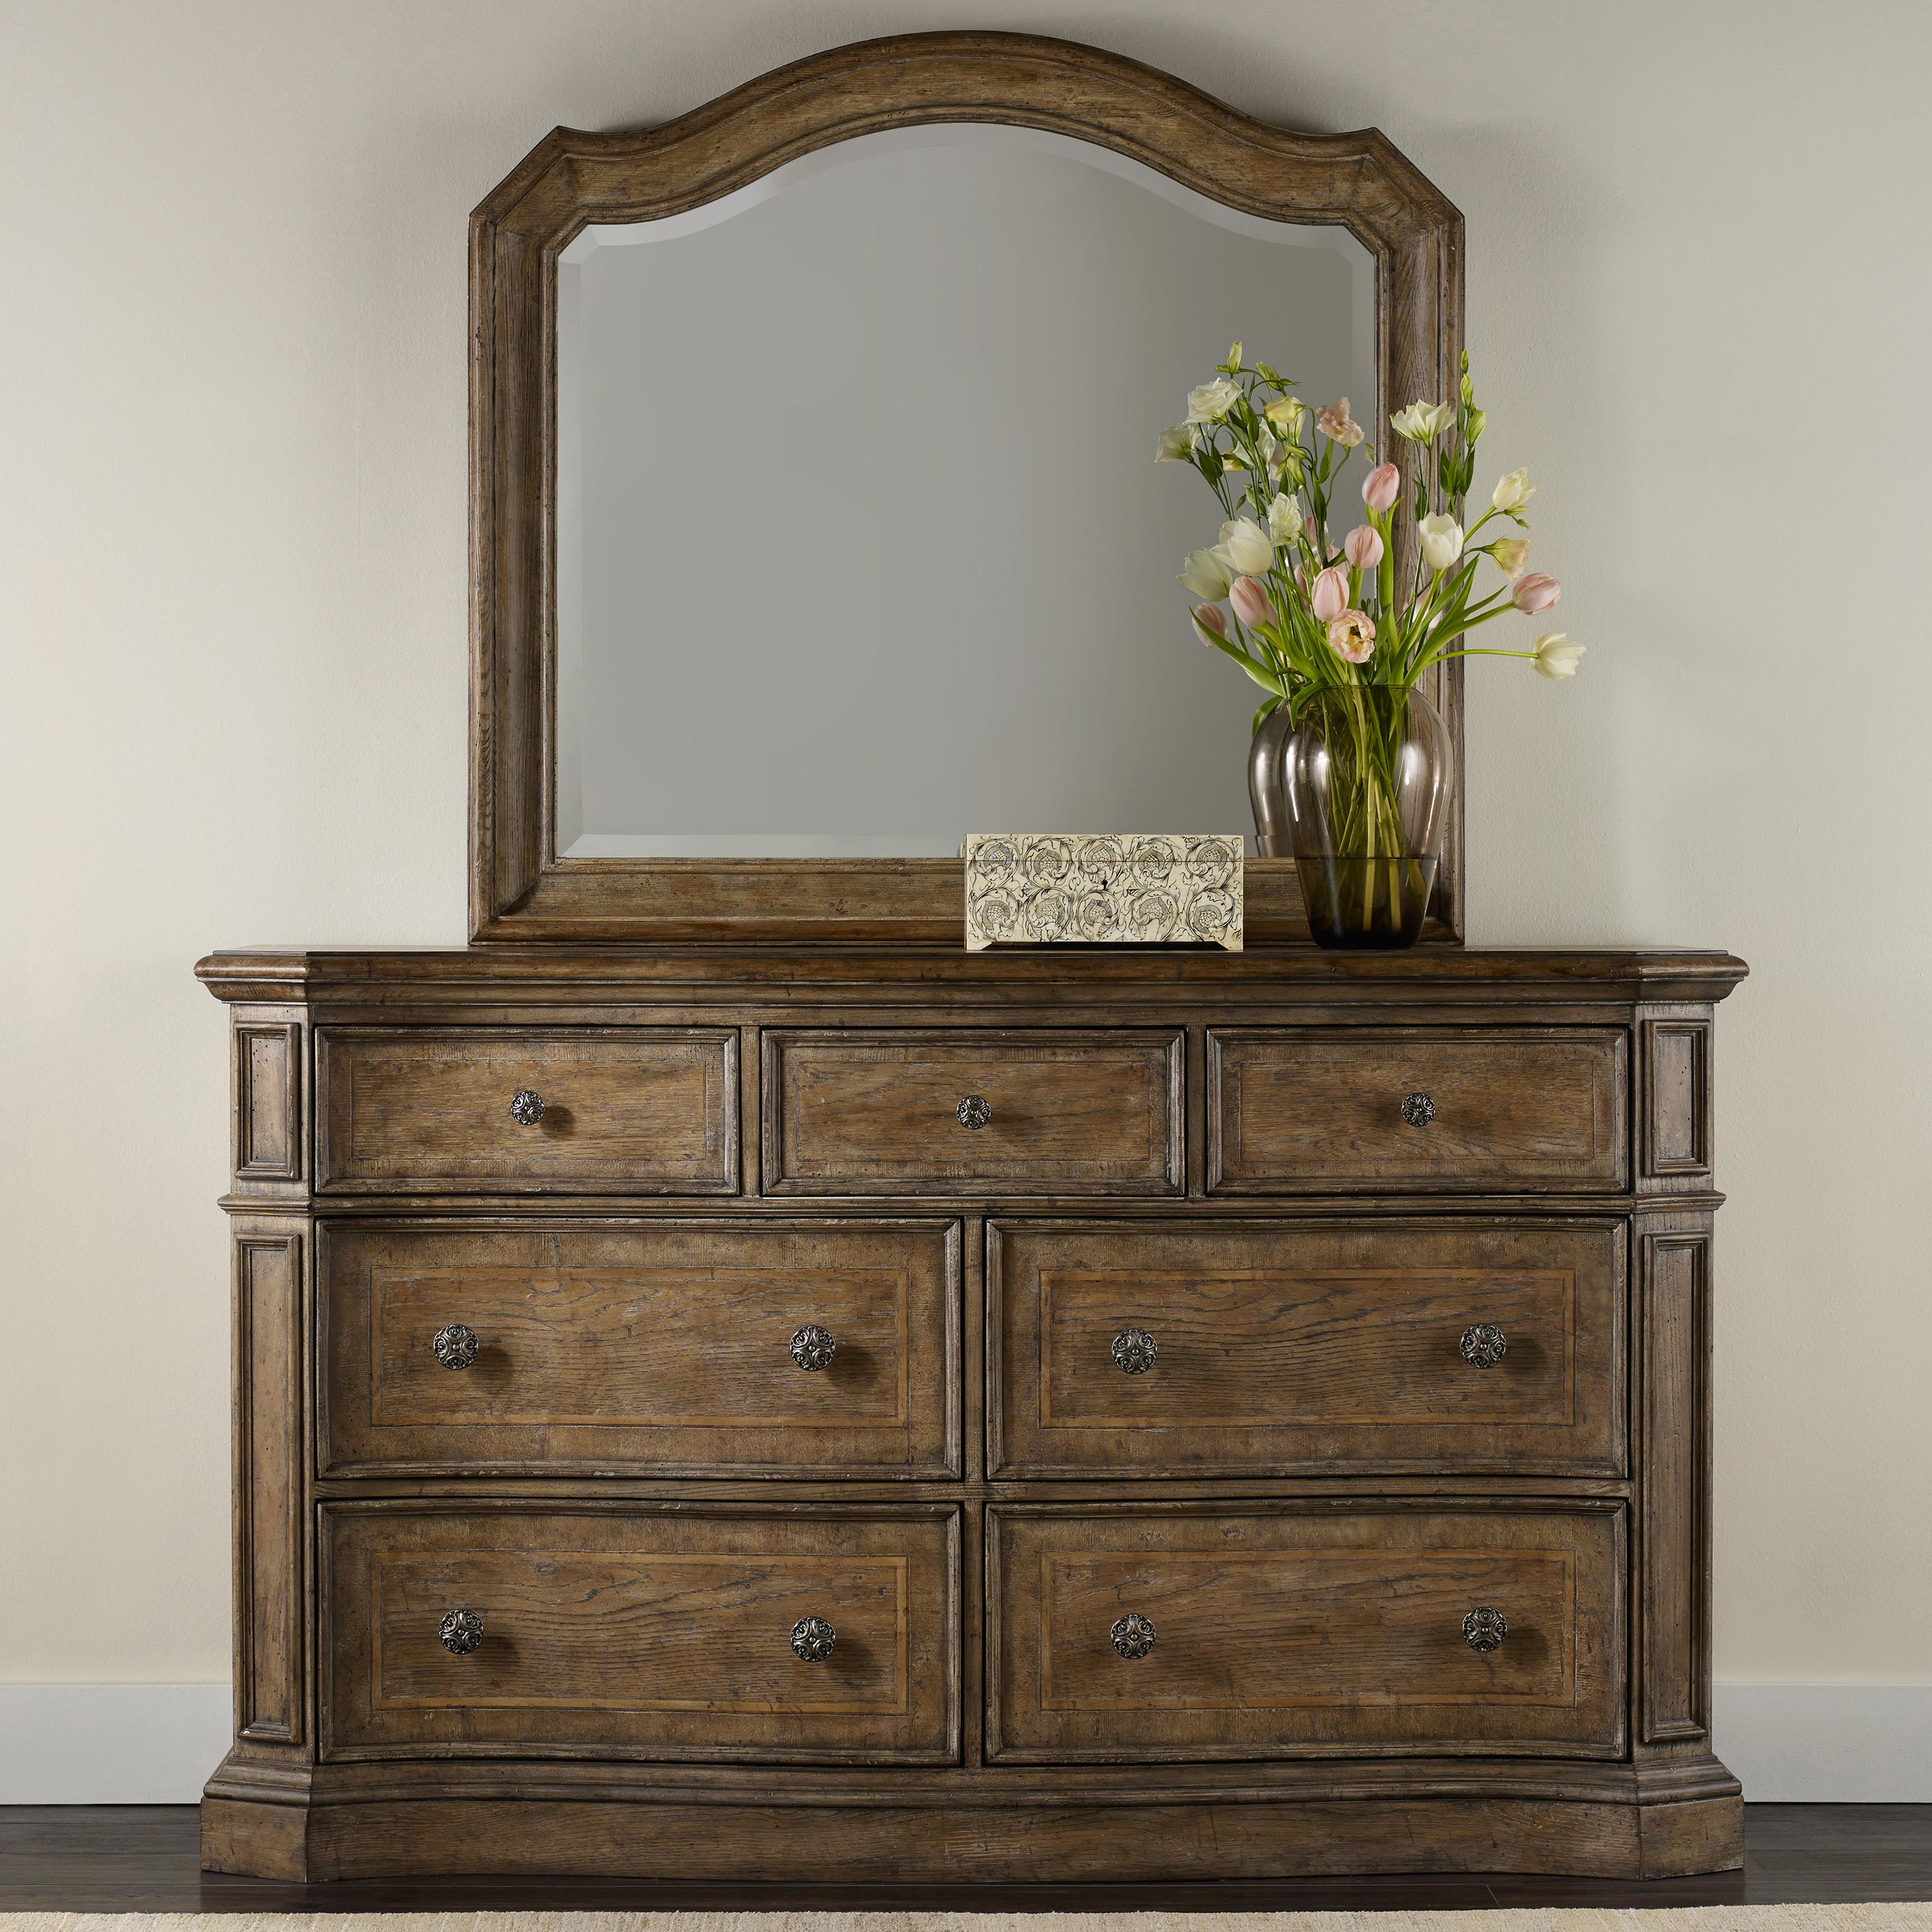 Hooker Furniture Solana Dresser and Mirror Set - Item Number: 5291-90002+8